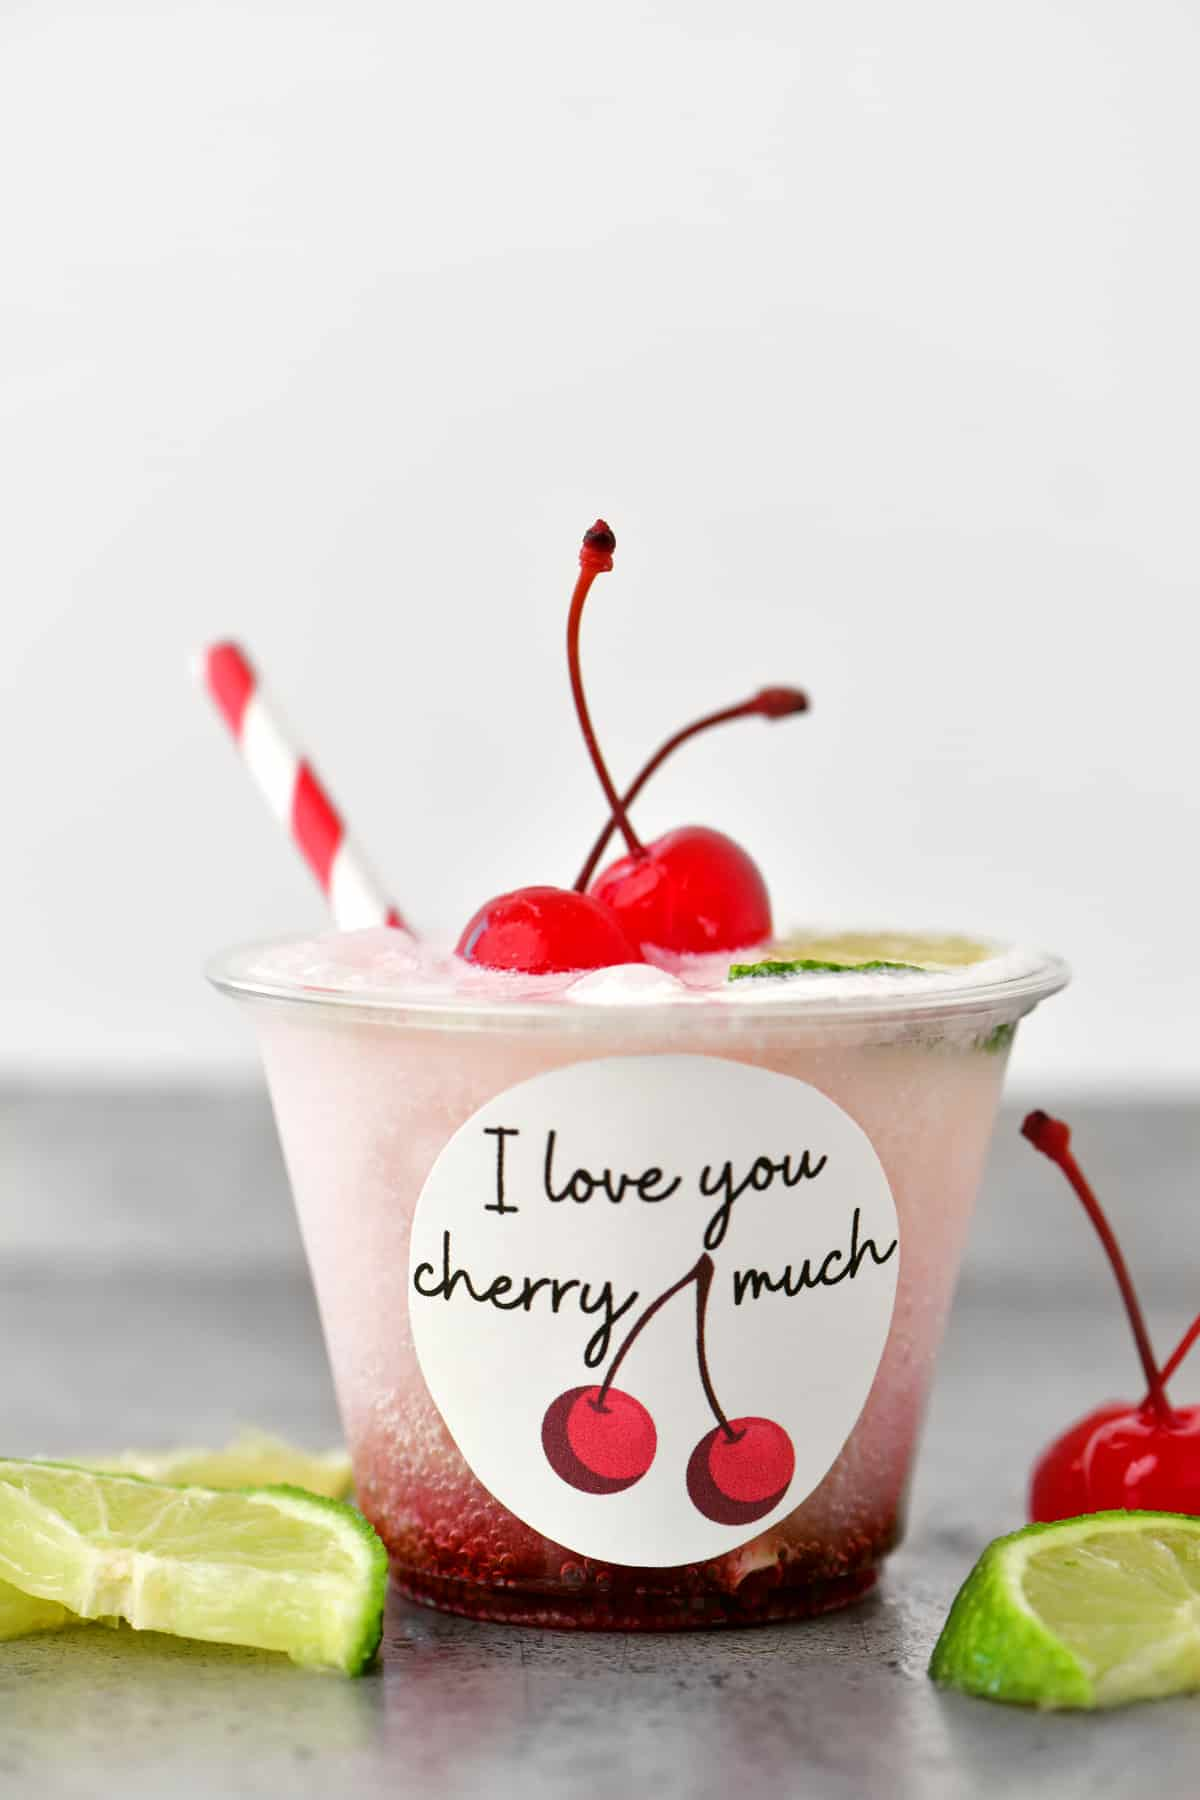 a cherry flavored valentines drink in a clear cup with a red and white striped straw